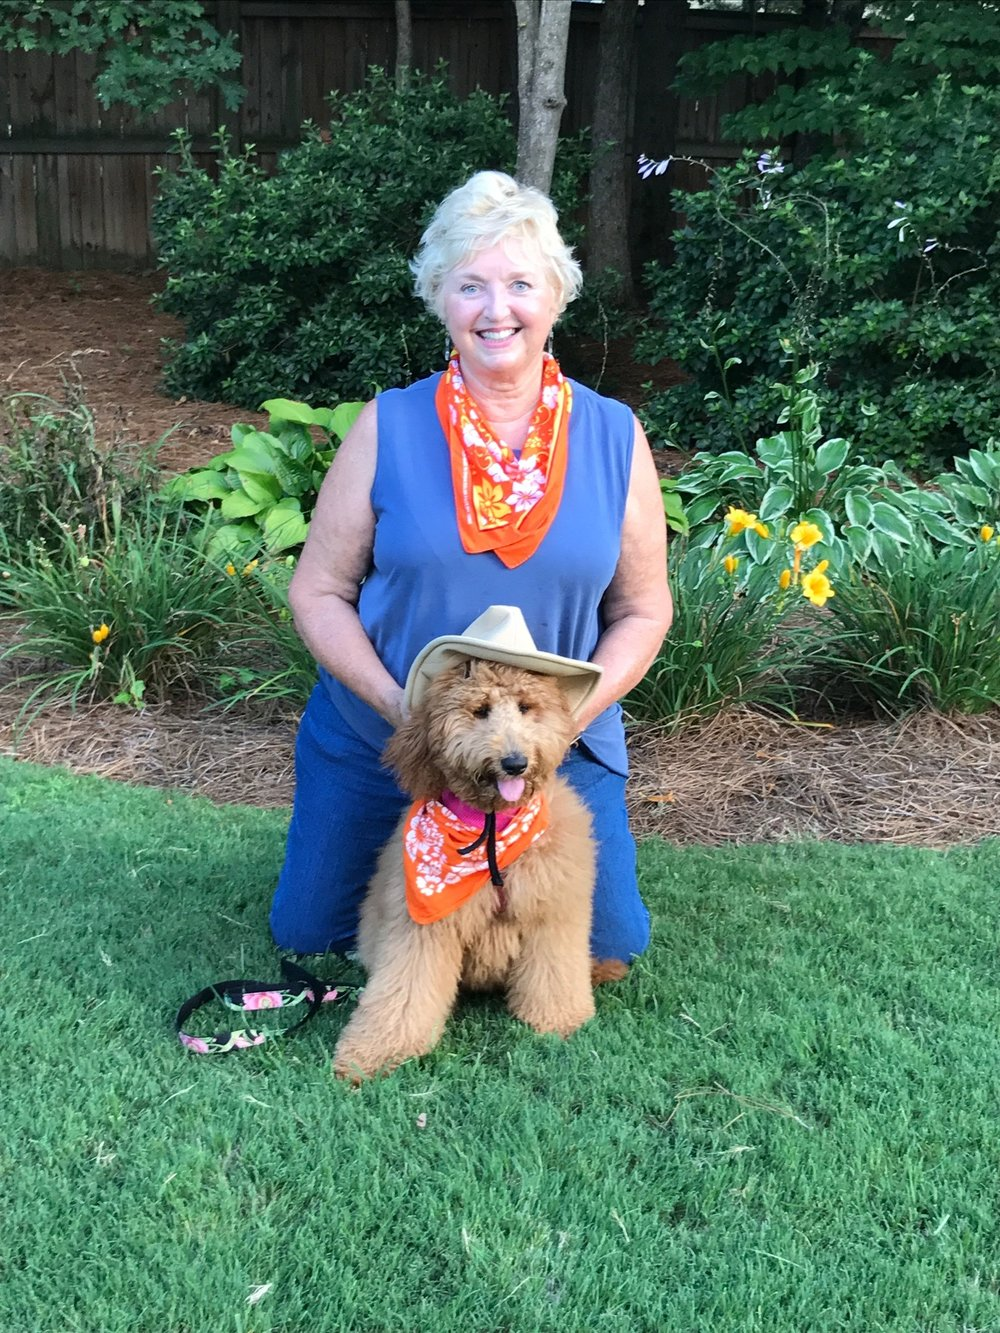 Ginger & Gail - Best puppy training class ever! Pat and Patti are outstanding instructors! My puppy did not want to leave. Looking forward to next week!